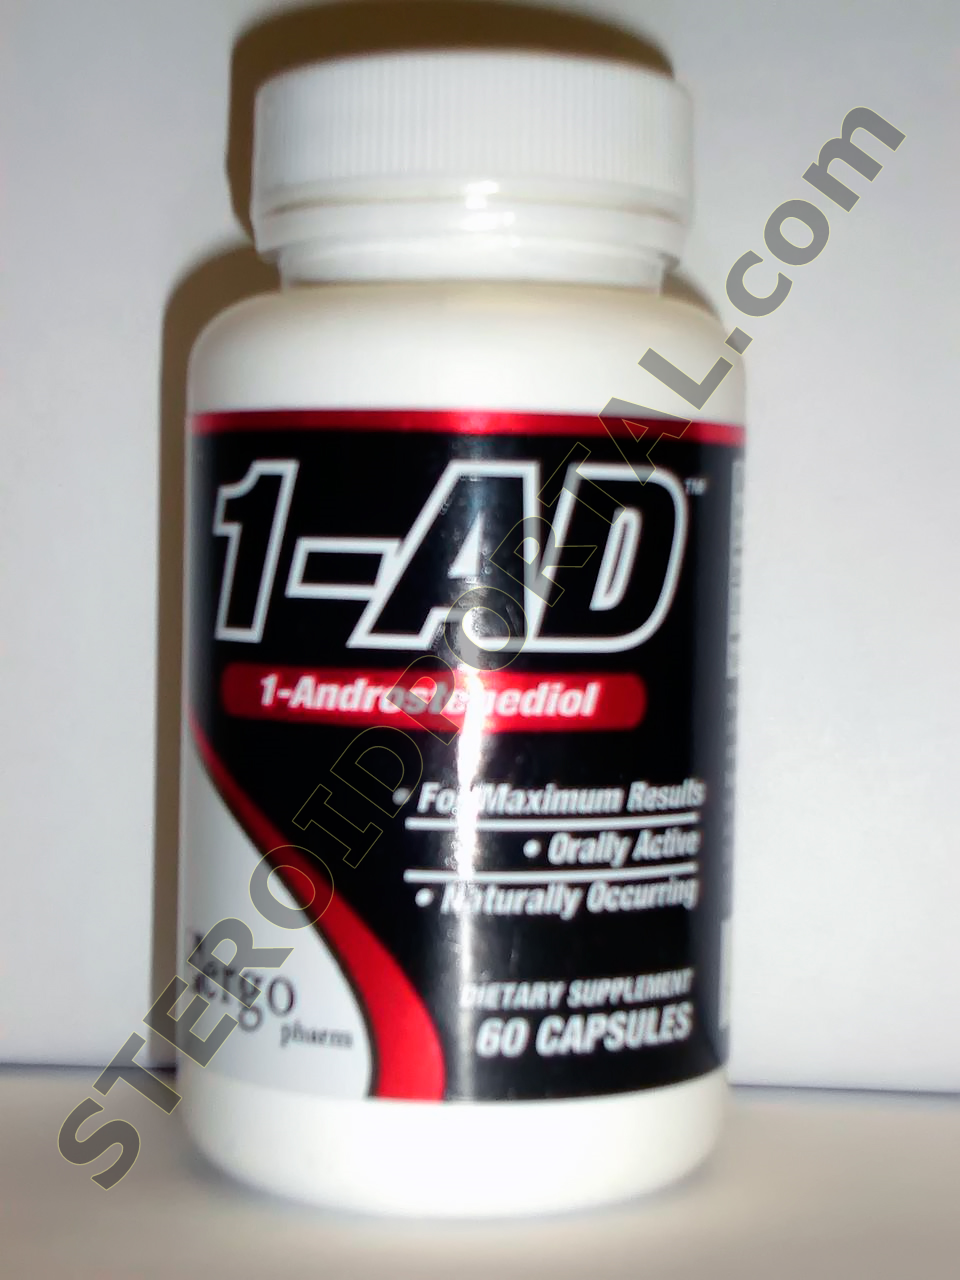 t3 cytomel steroid